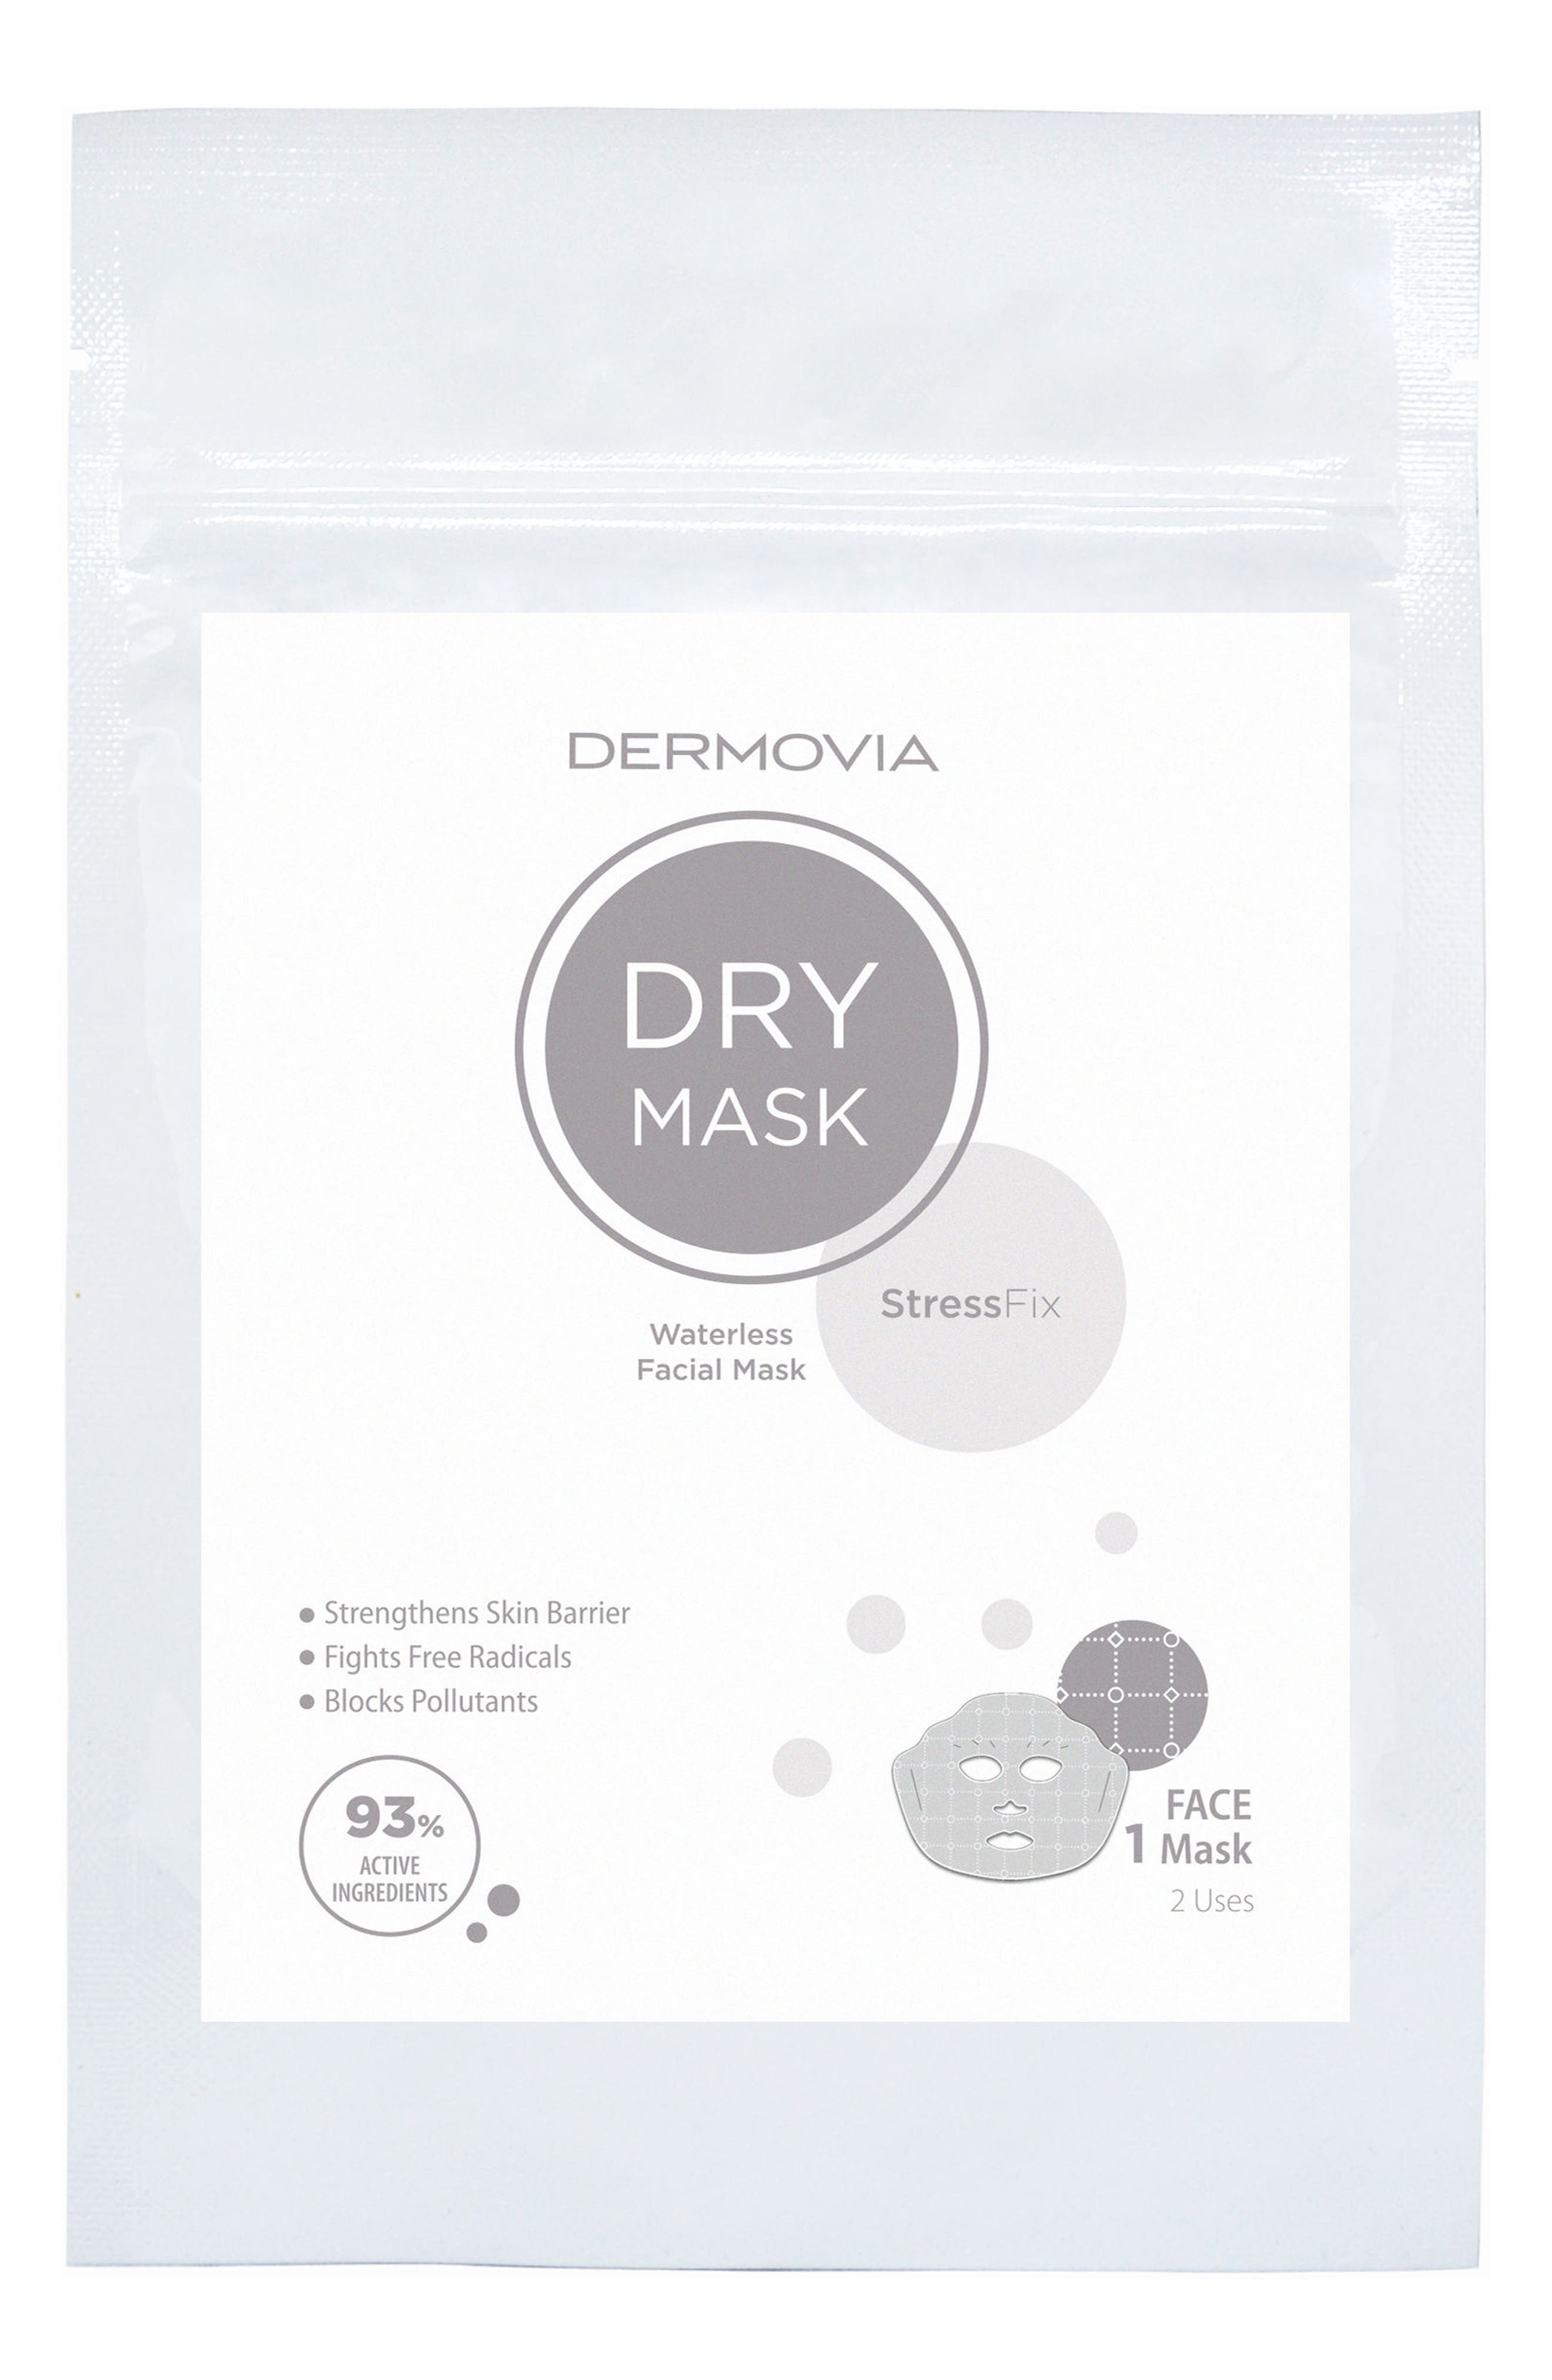 DERMOVIA Dry Mask Stressfix Waterless Facial Mask